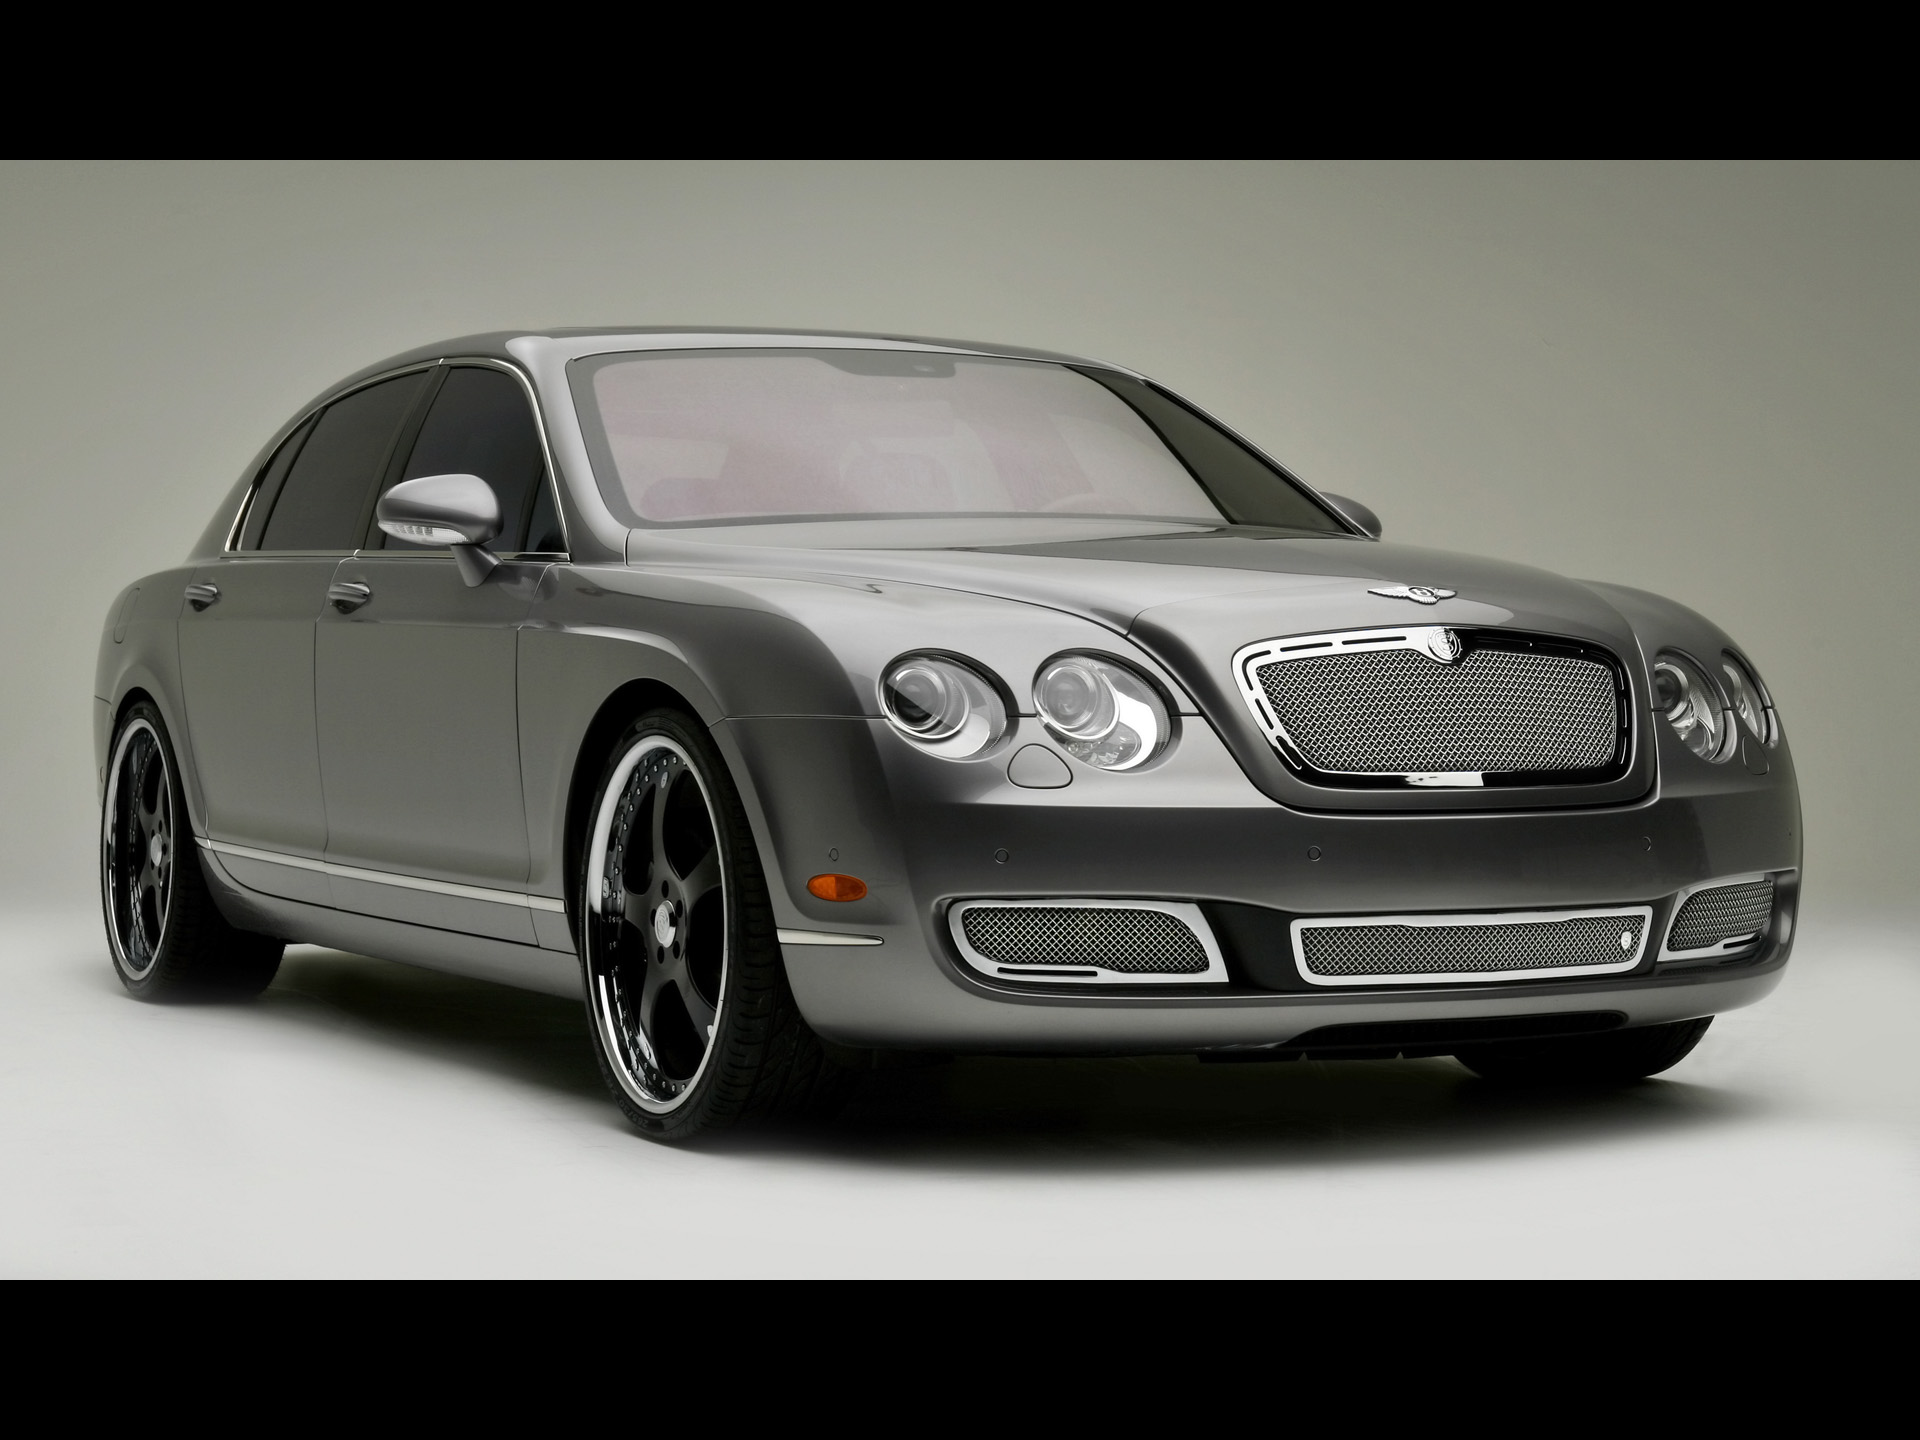 STRUT Bentley Flying Spur Oxford Side Angle Desktop Backgrounds Free Wallpaper